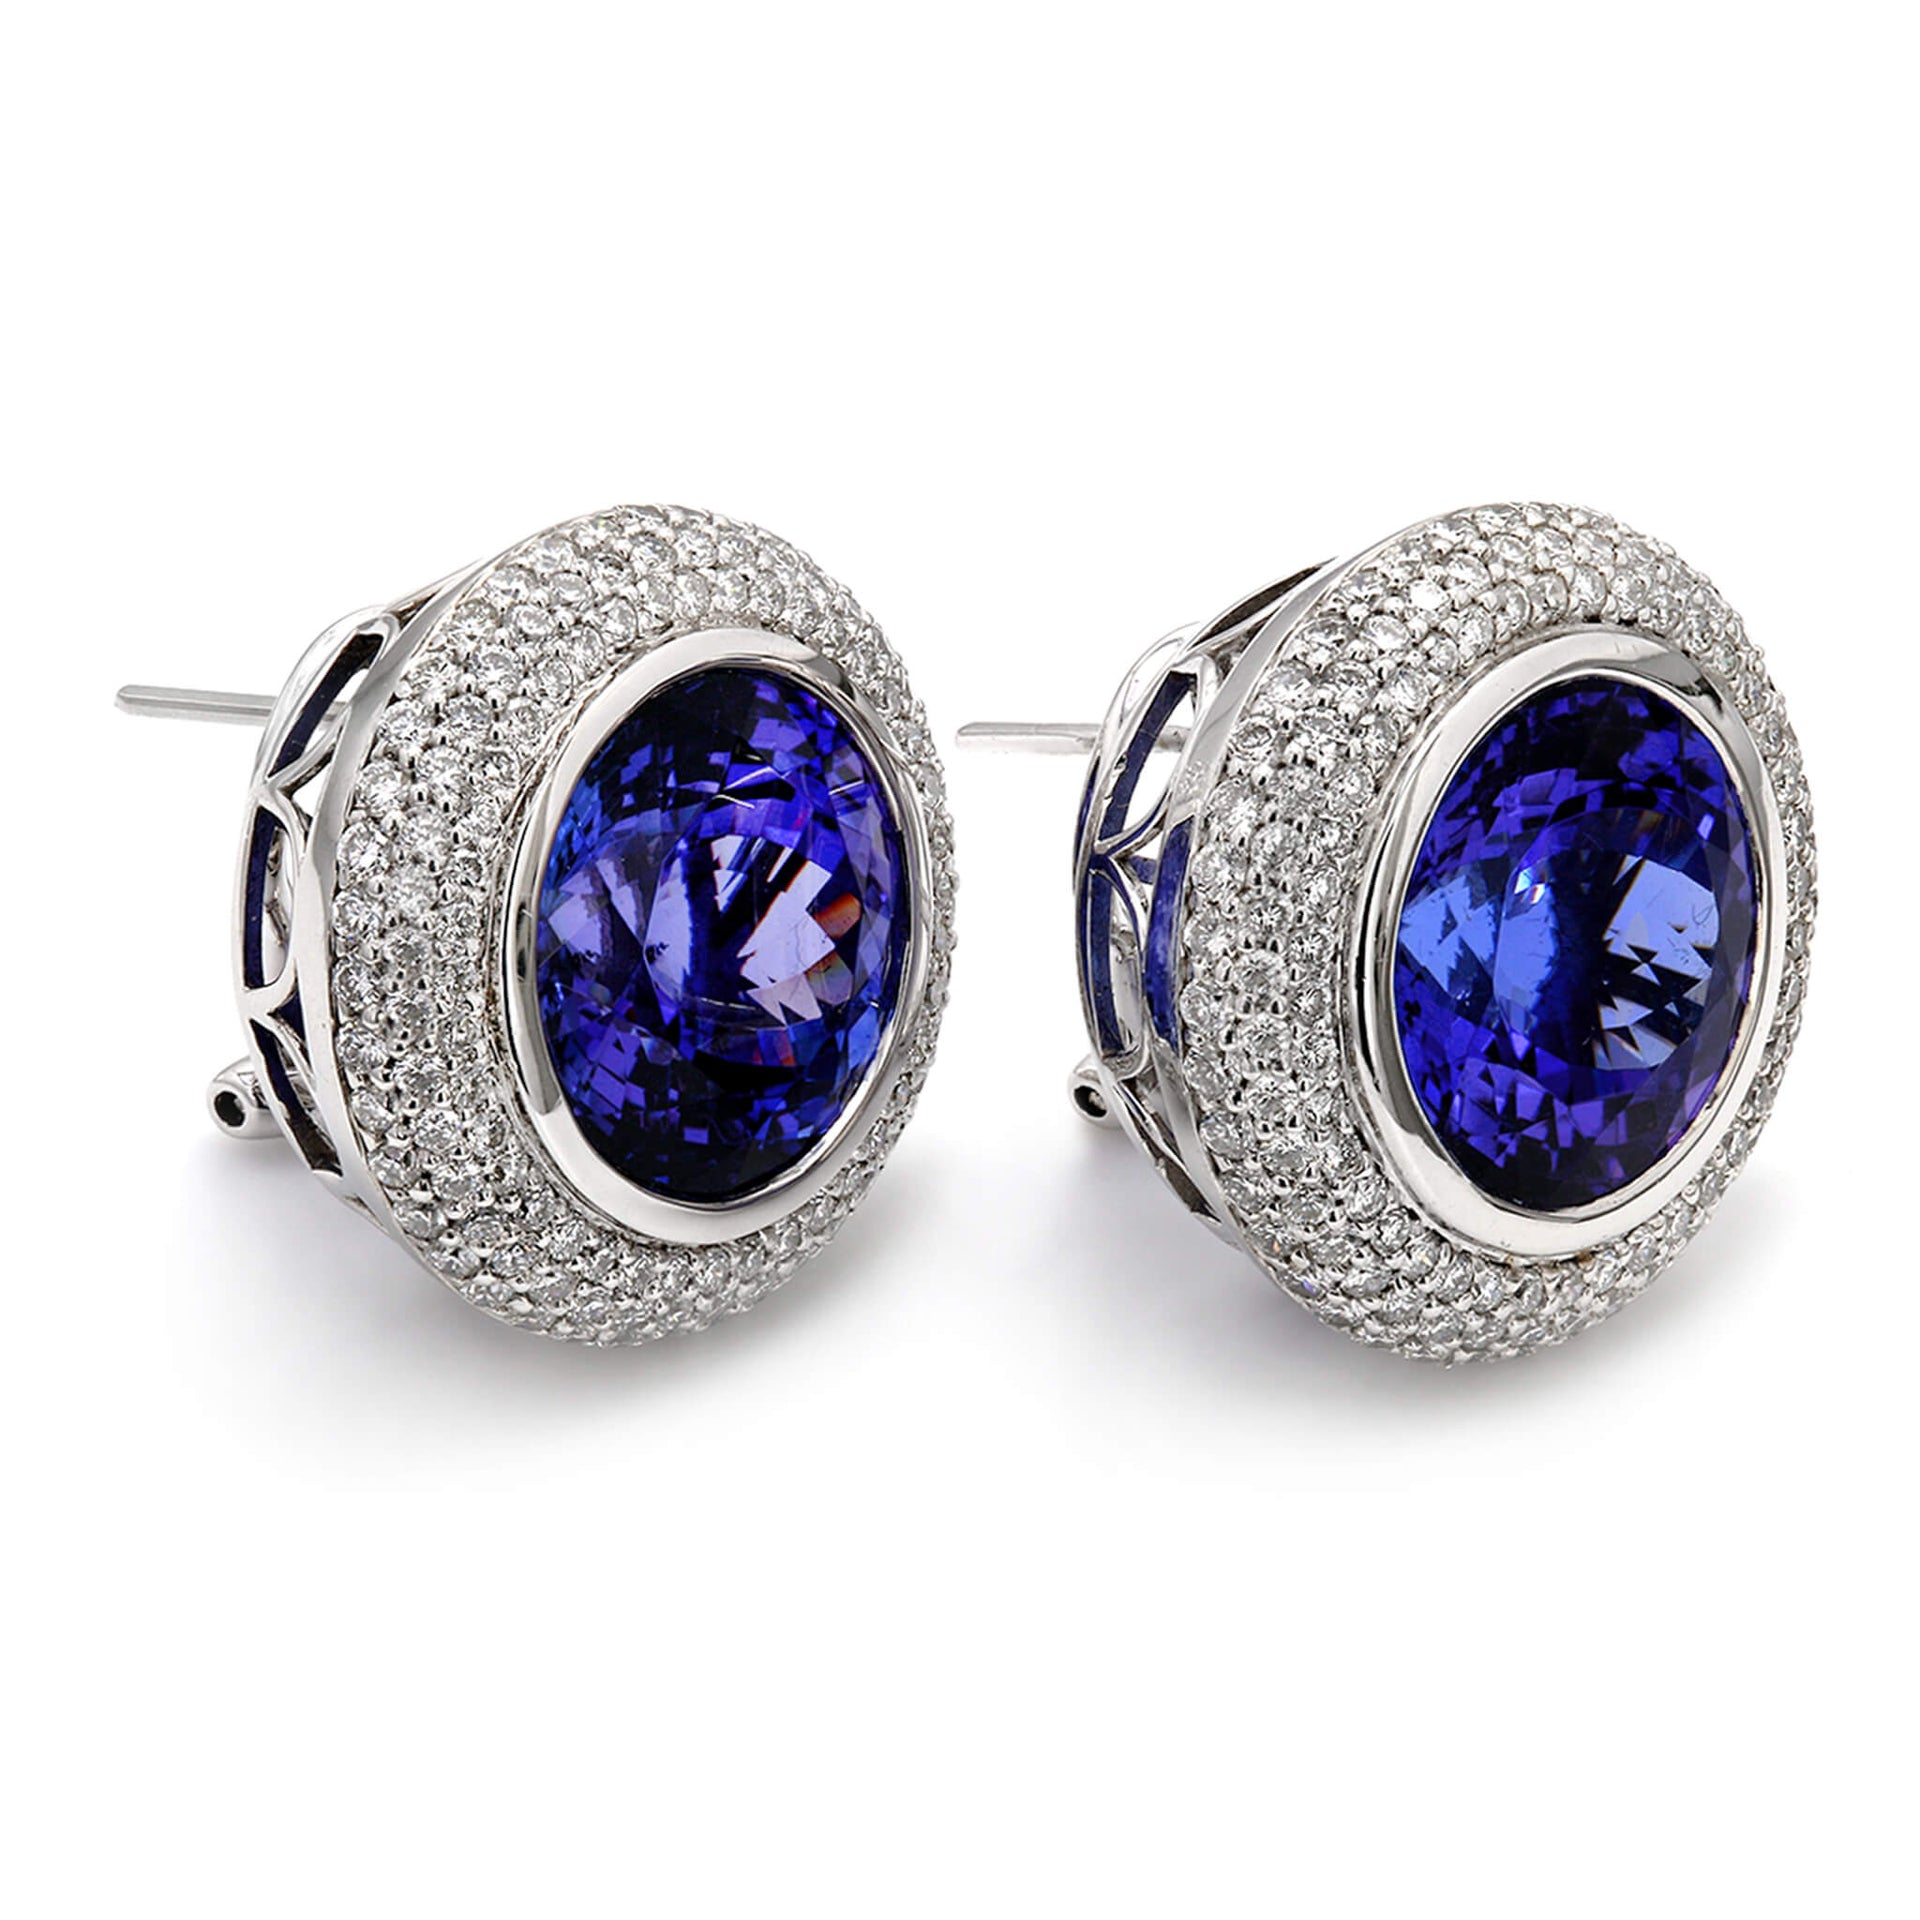 29.58 Carat Round Cut Triple Halo Design Tanzanite & Diamond Earrings in 18K White Gold 3D View